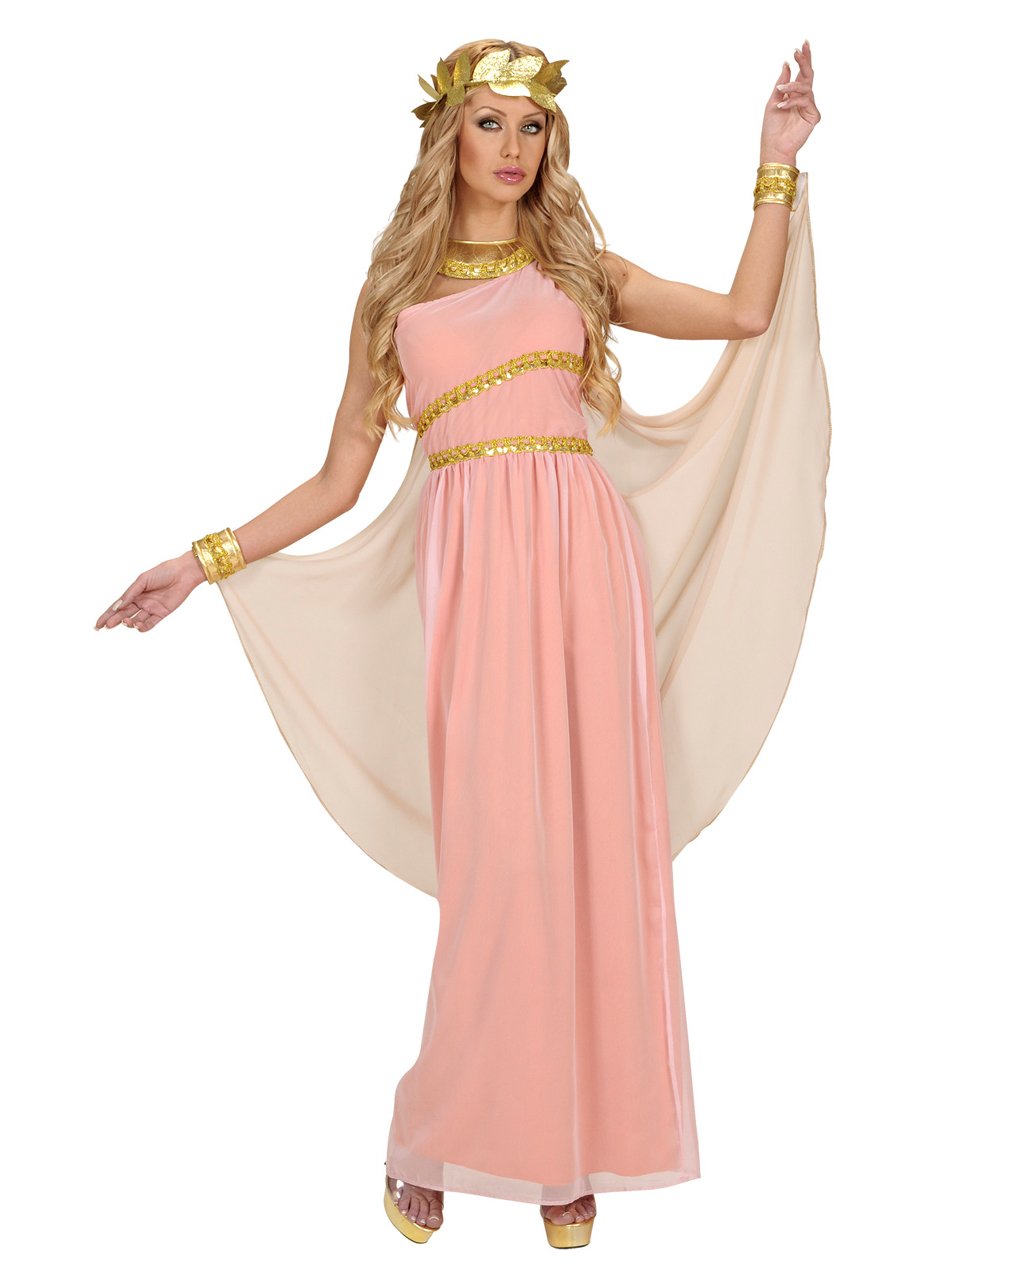 greek goddess aphrodite m historical costumes at low prices | horror